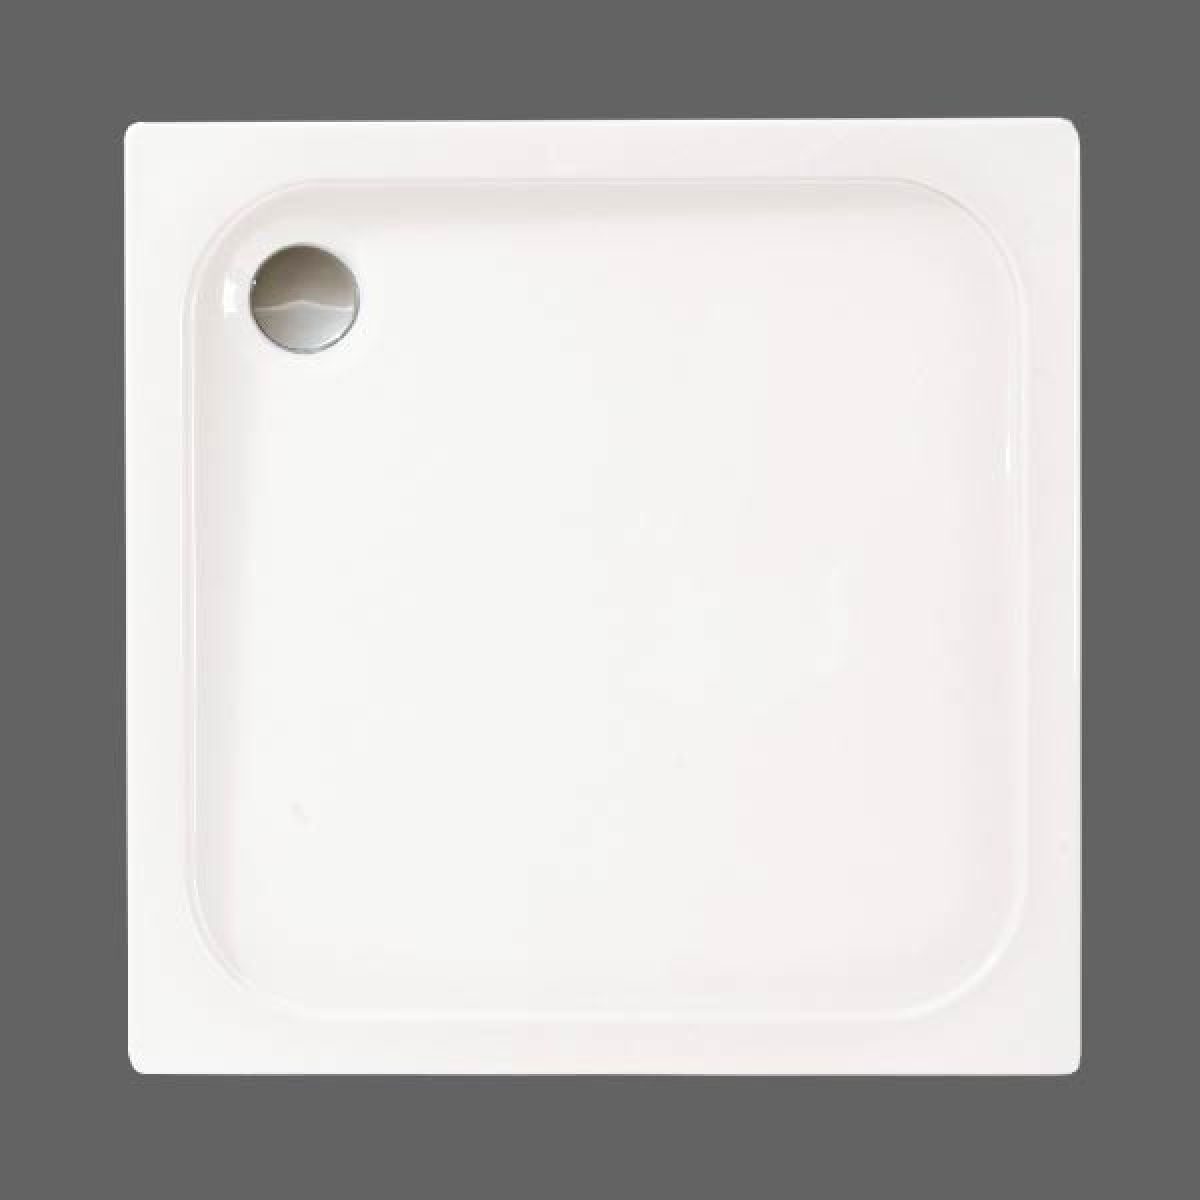 Merlyn MStone Square Shower Tray 760 x 760mm